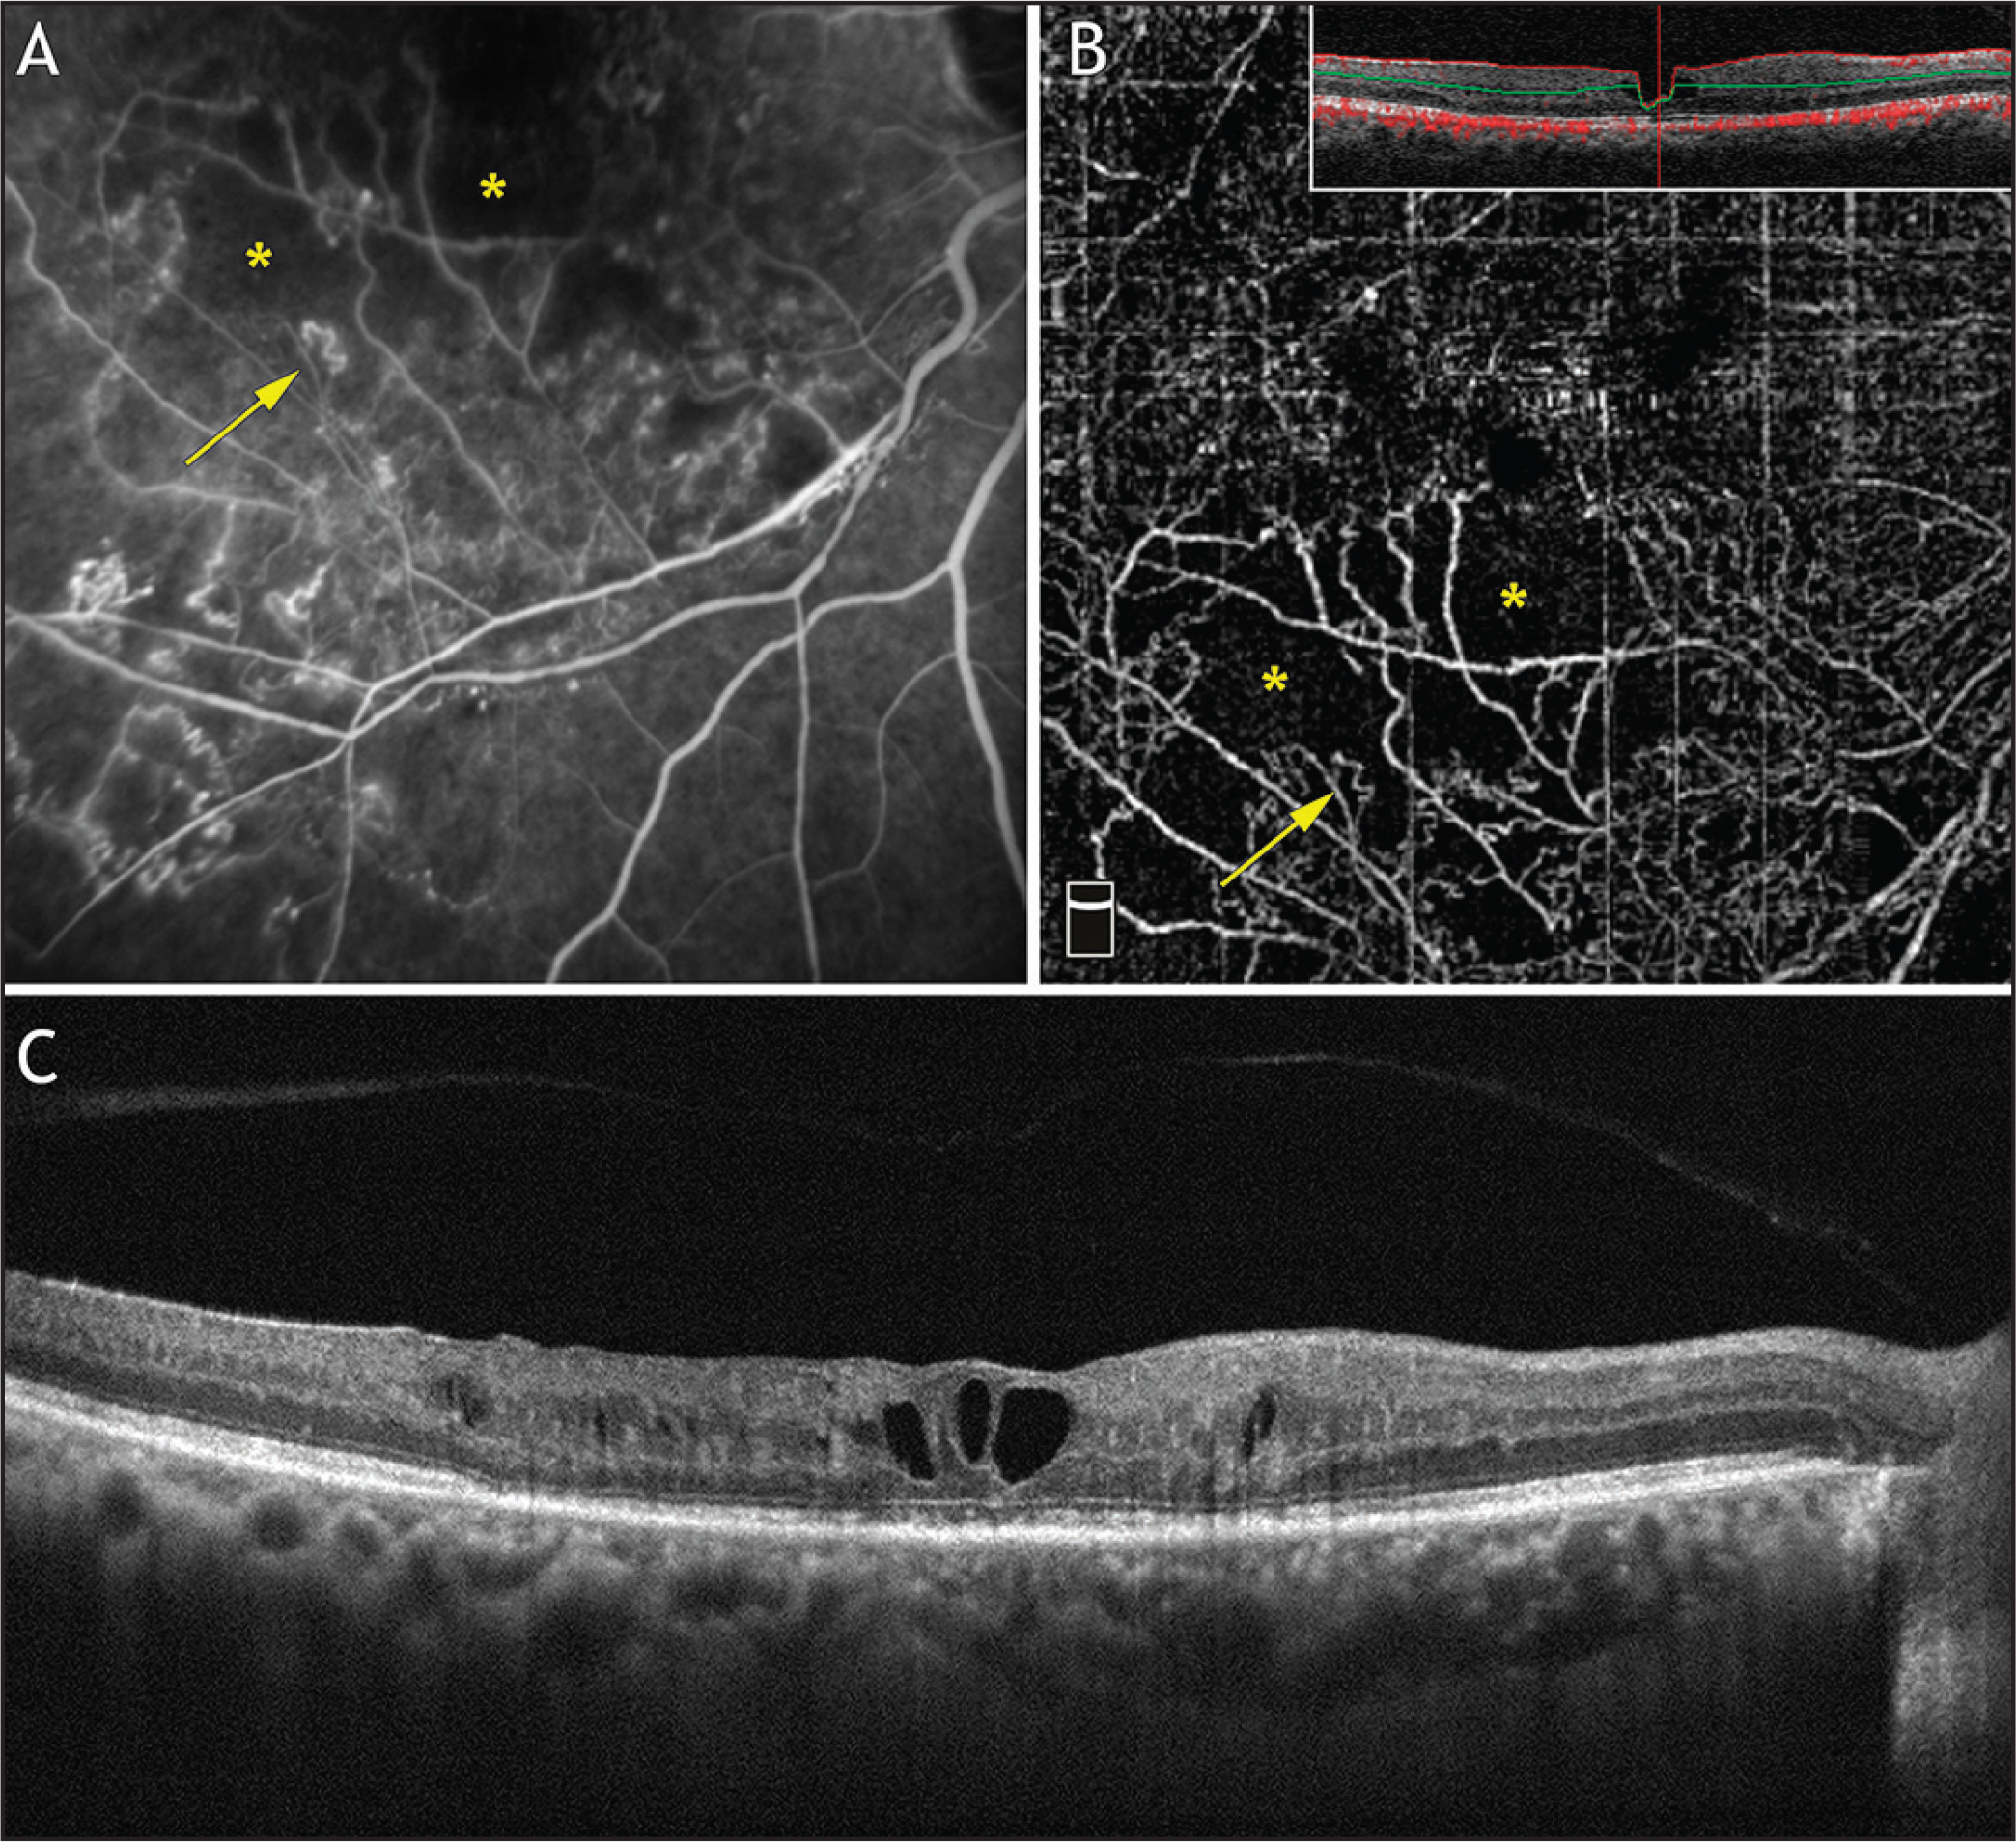 Multimodal imaging analysis of a patient with branch retinal vein occlusion. (A) Fluorescein angiography (FA) shows a nonperfused area (yellow asterisks) and vascular loop (yellow arrow). (B) Optical coherence tomography (OCT) angiography using the spectral-domain Avanti (Optovue, Fremont, CA) of the superficial plexus shows an avascular retina (yellow asterisks) and vascular loop (yellow arrow) seen on FA. Upper right box shows corresponding OCT B-scan with superficial retinal plexus segmentation delineated by the red and green lines. (C) Corresponding OCT B-scan shows a hyporeflective area that corresponds to cystoid macular edema.